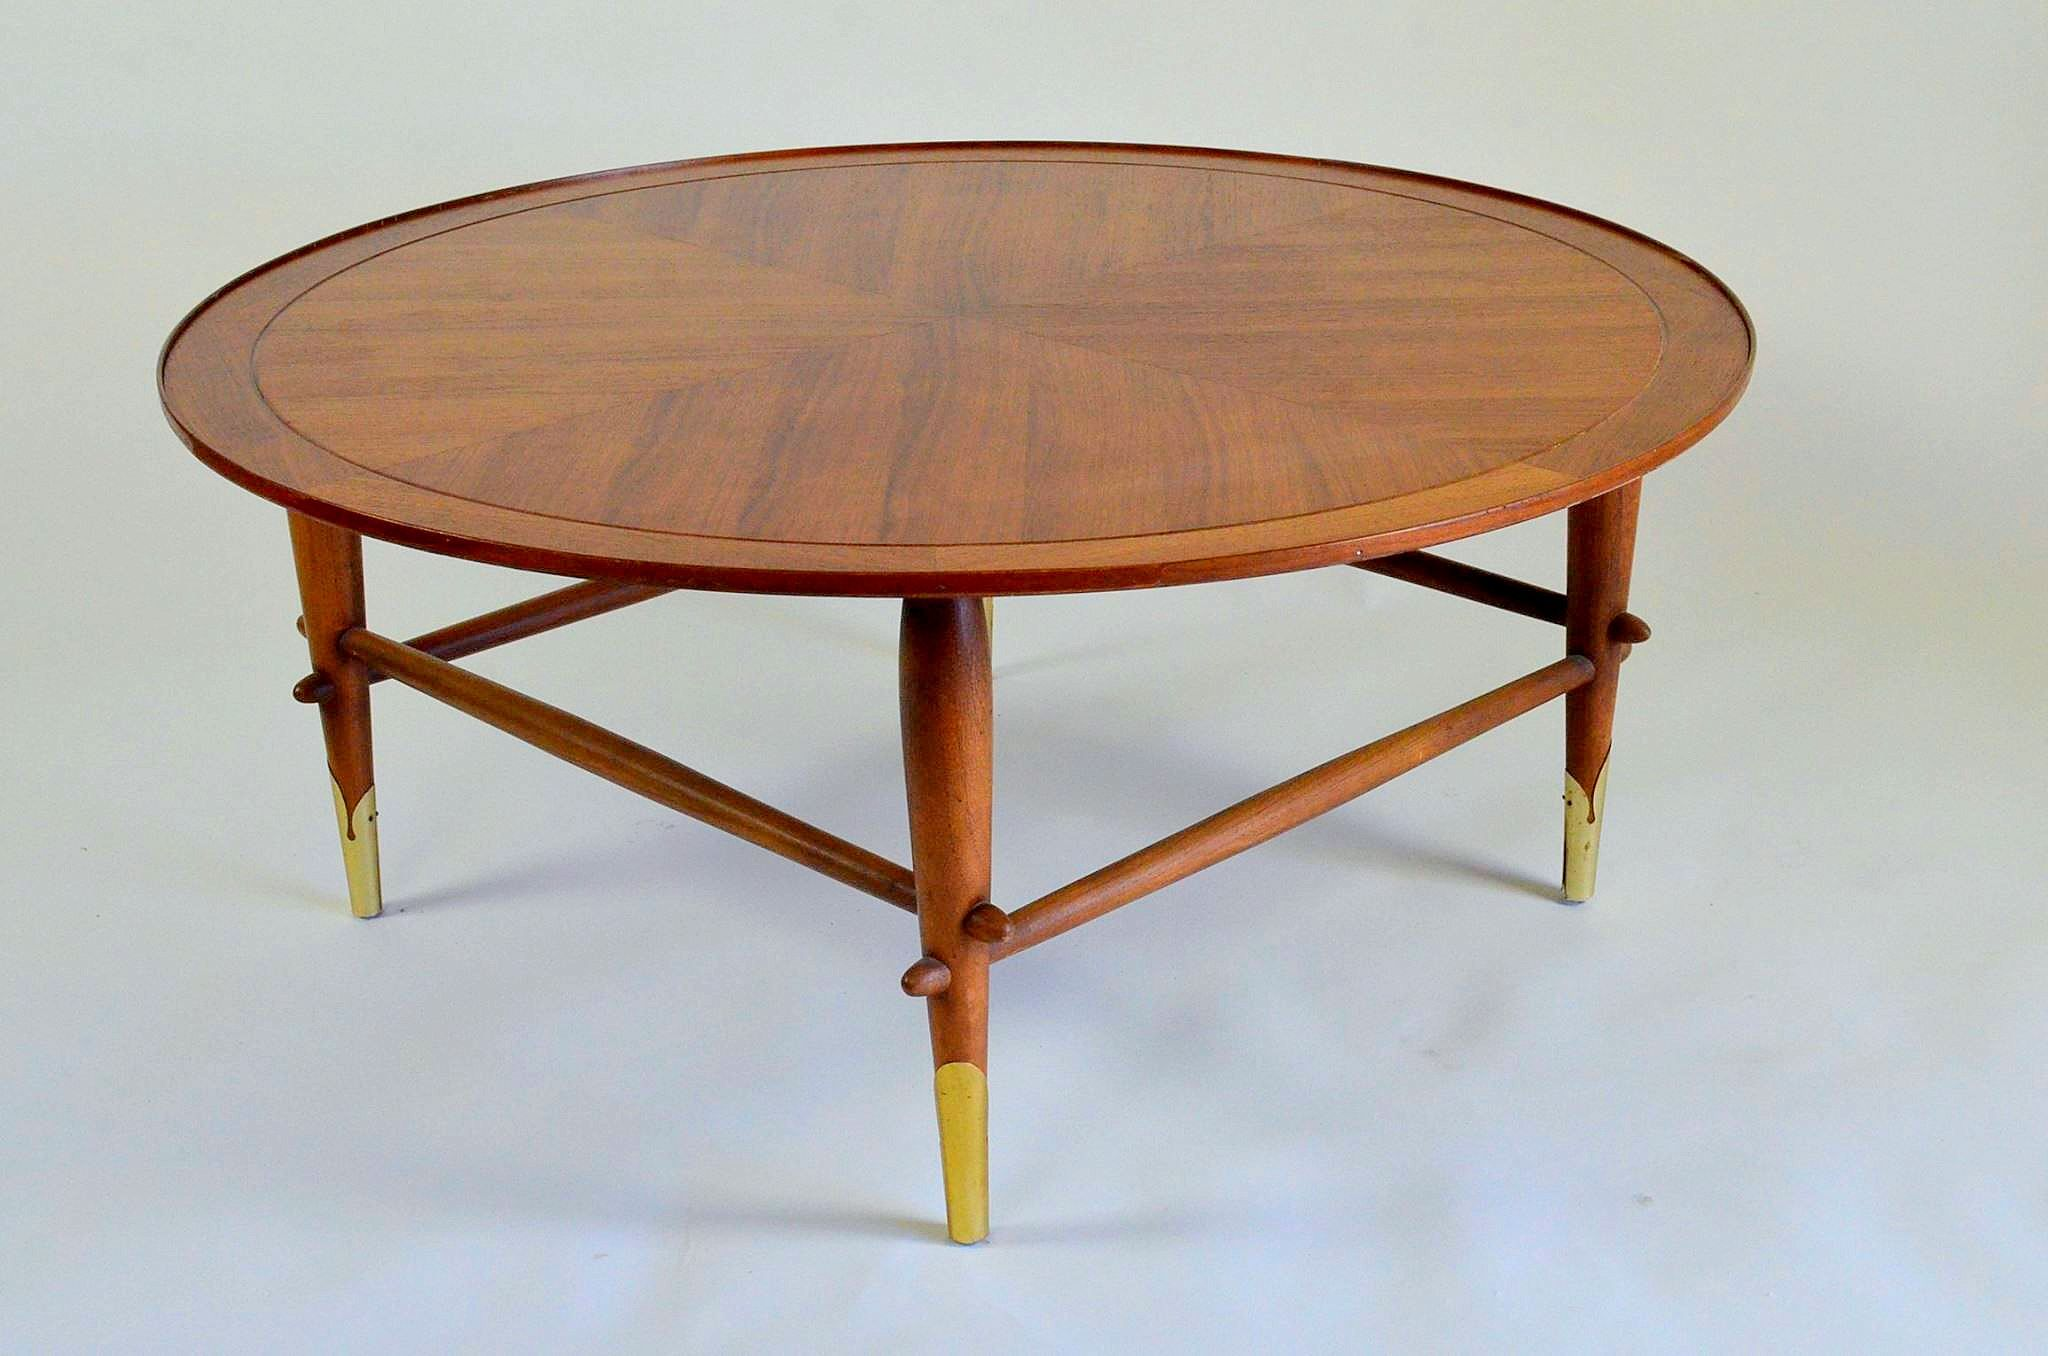 Lane Coffee Table Table End Tables Coffee Table [ 1356 x 2048 Pixel ]